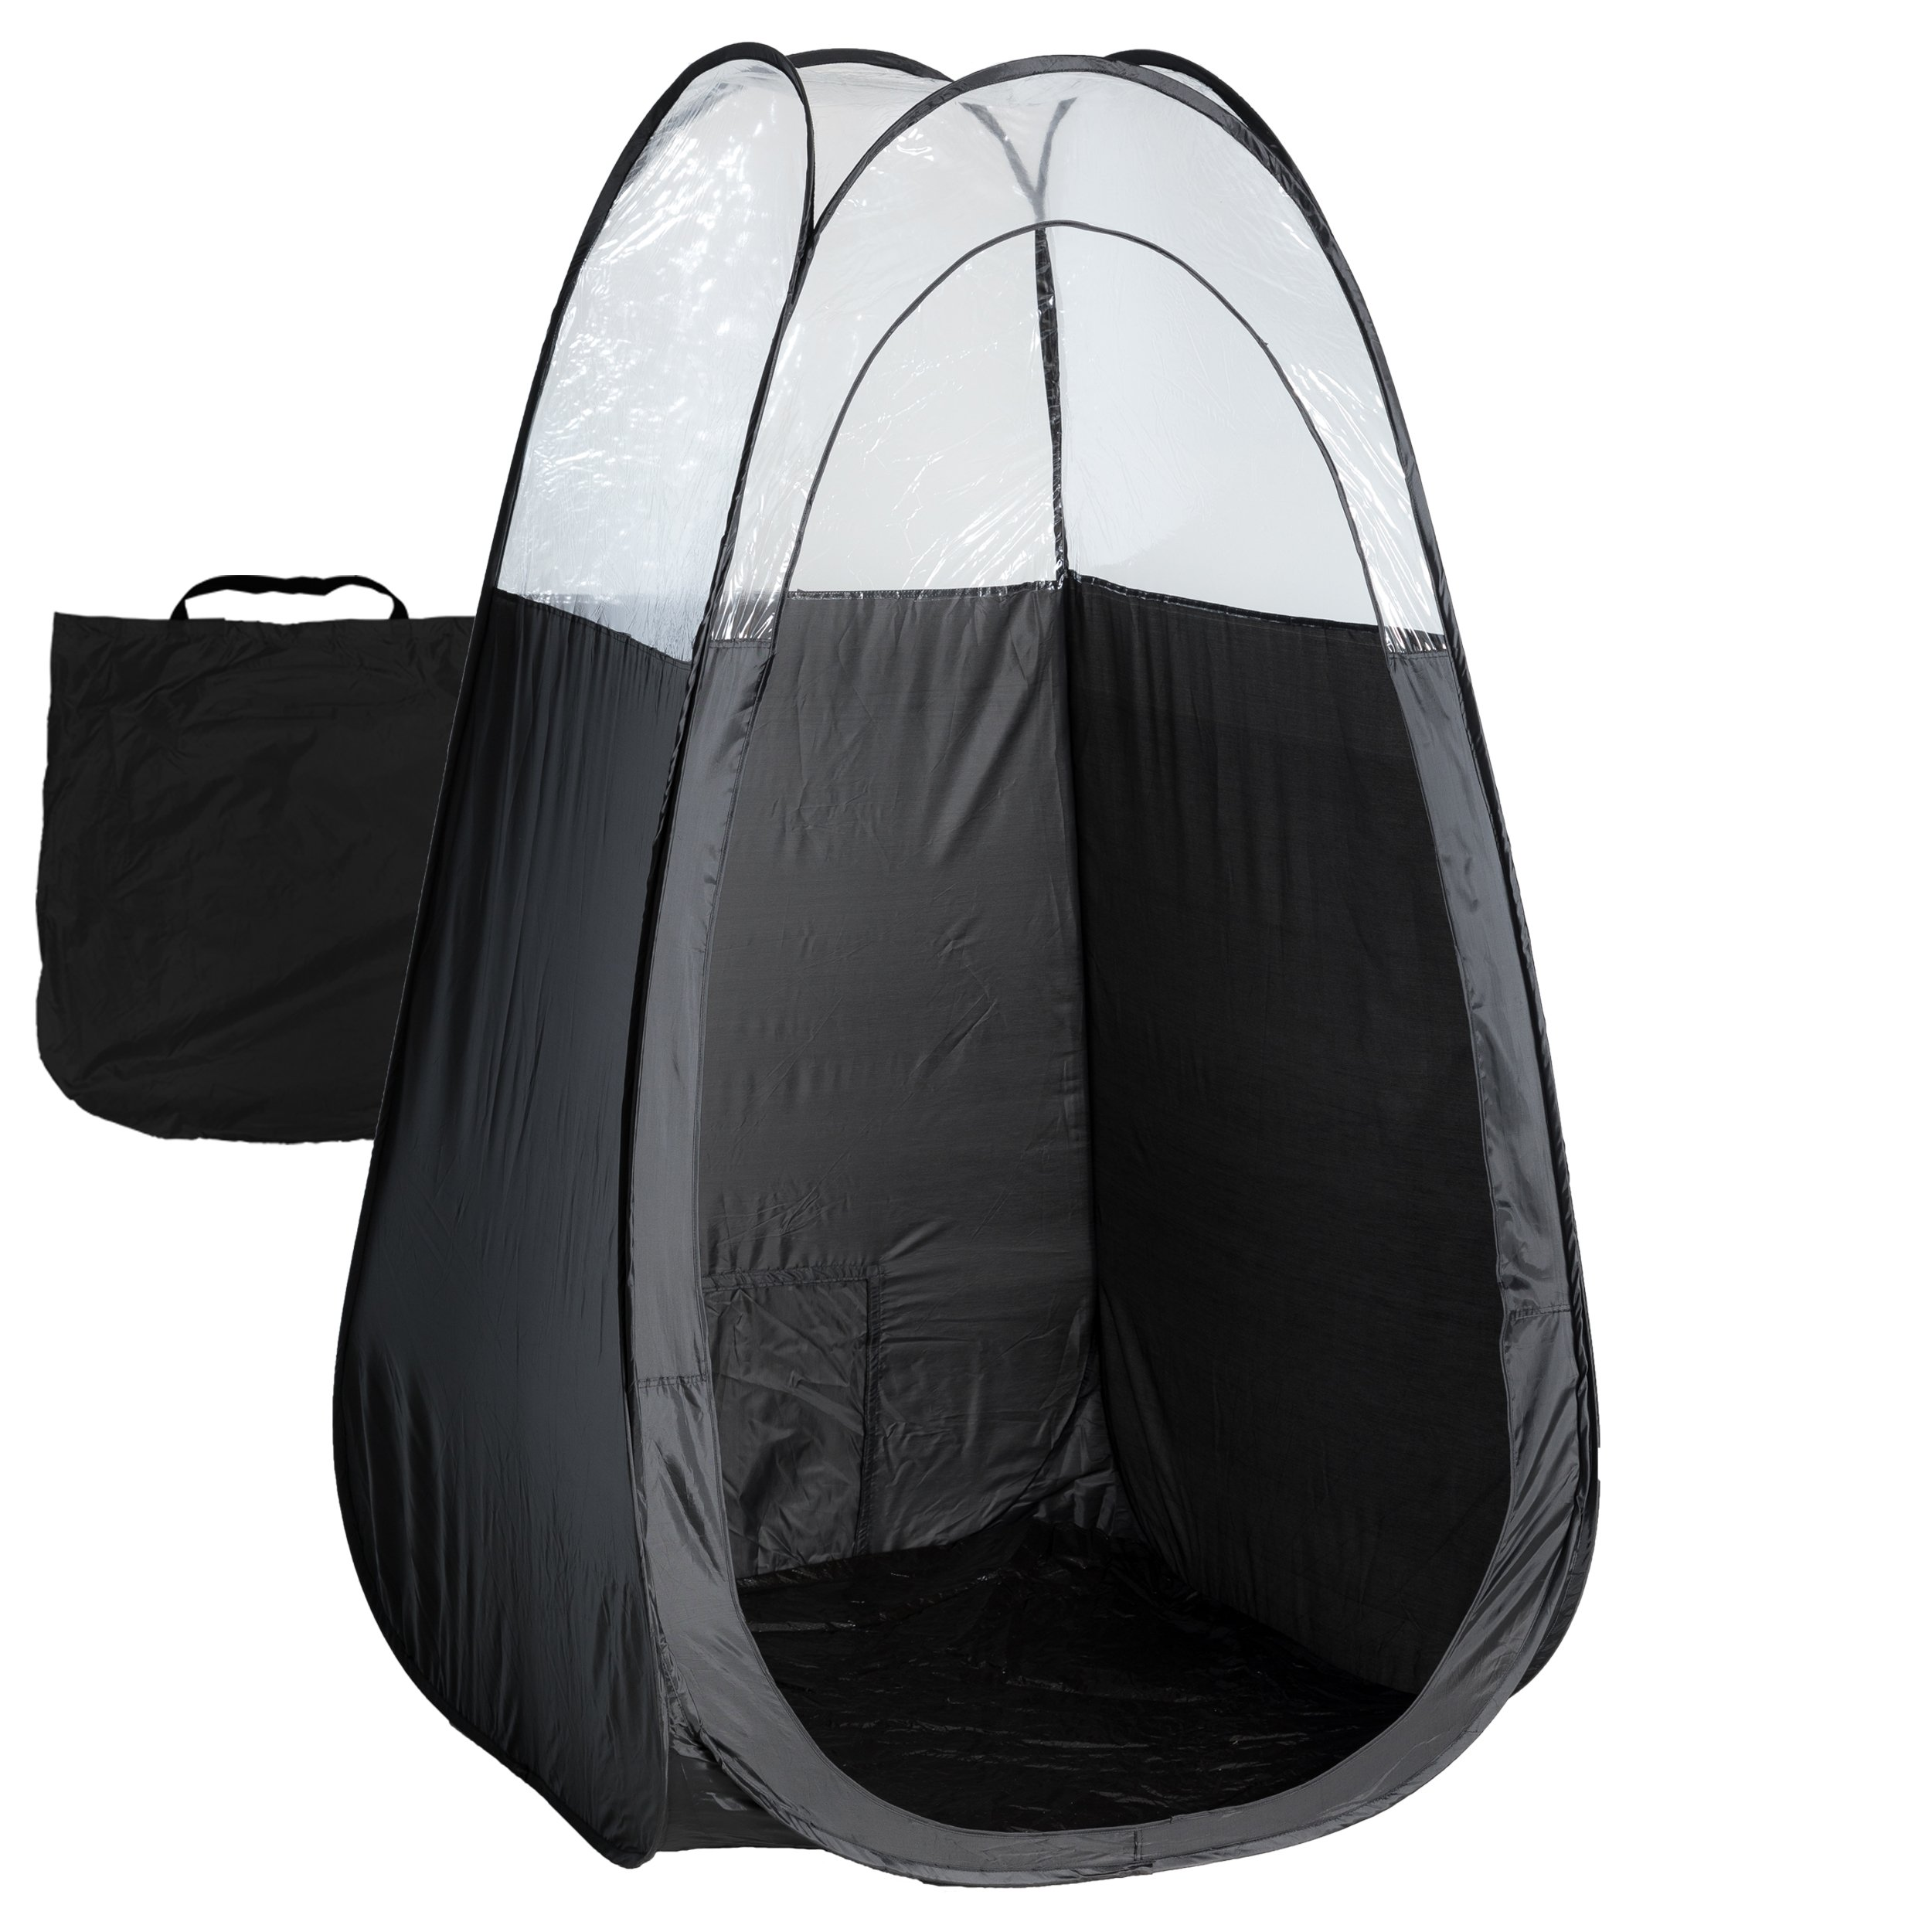 Black Spray Tan Tent with Carry Bag - Large